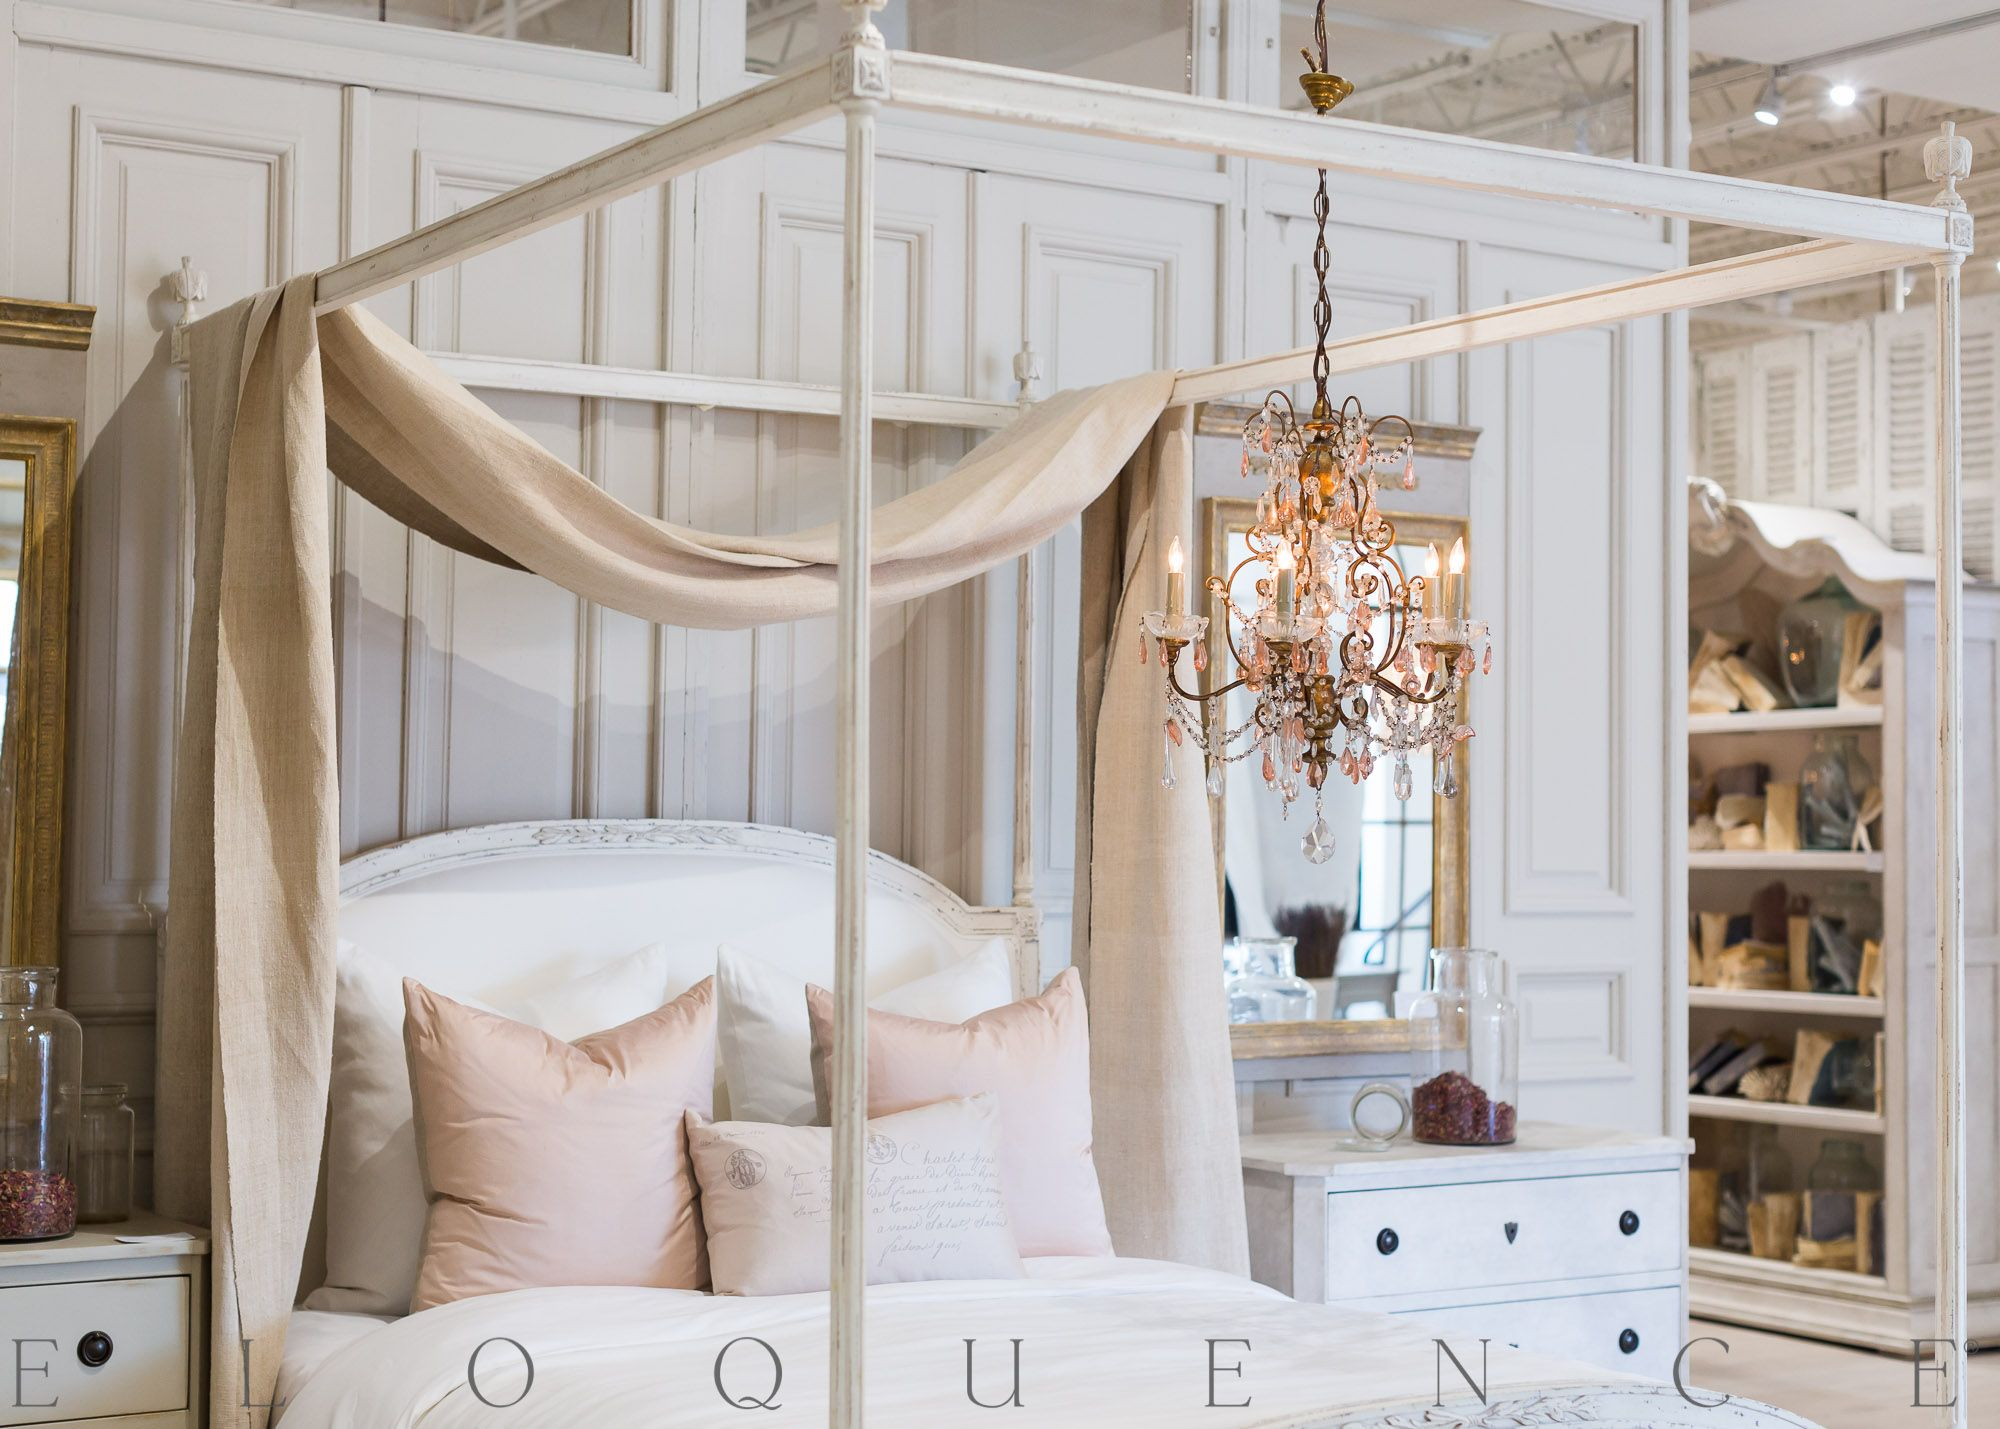 Eloquence Showroom in High Point NC 1 building 2 stories 12 000